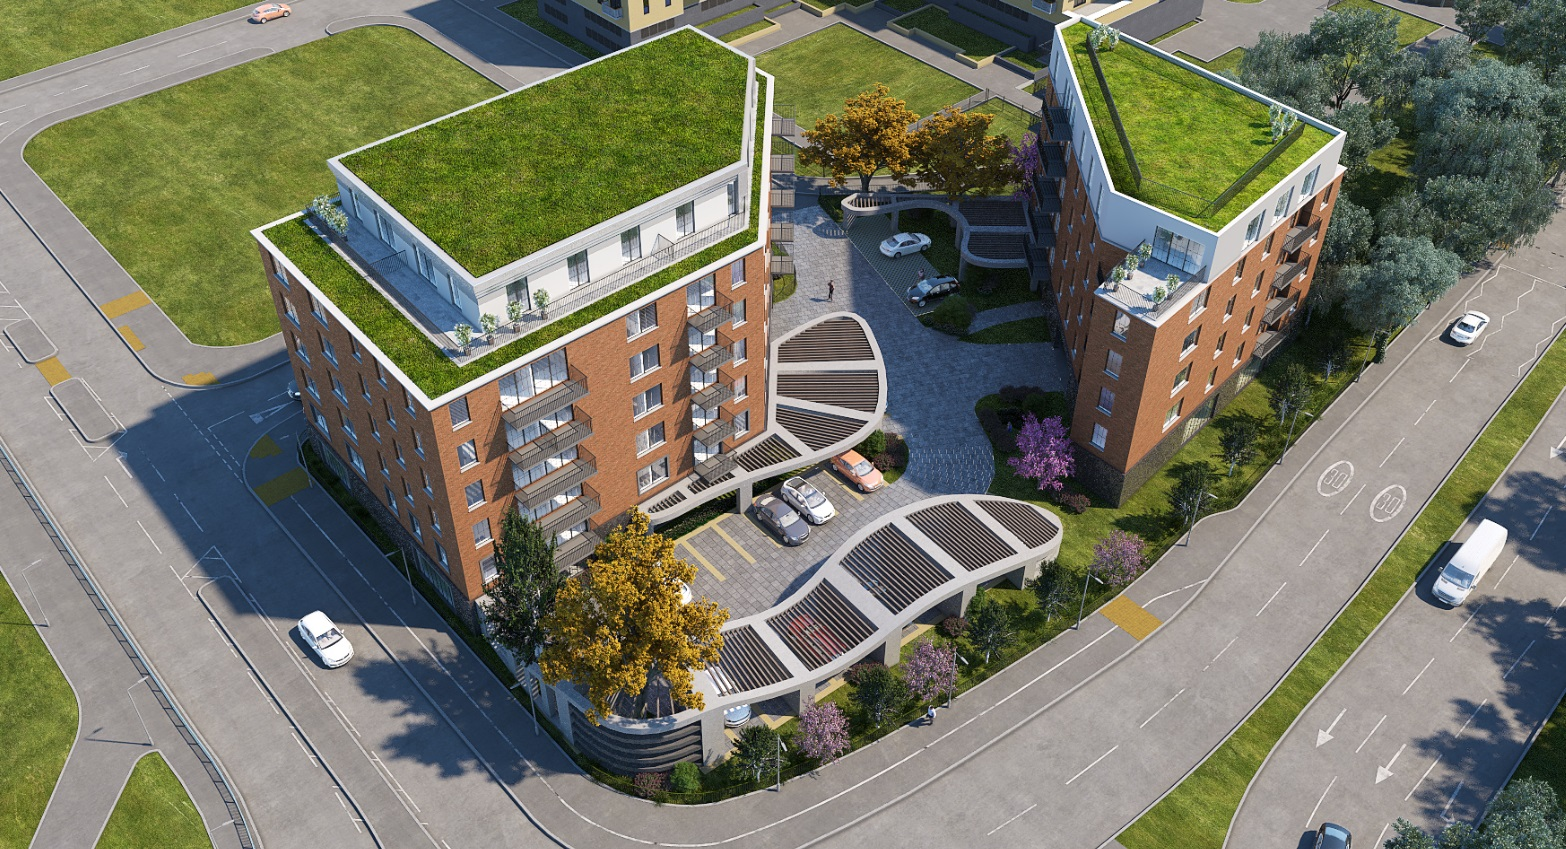 New block of flats in Belvedere approved near Lidl and Travelodge